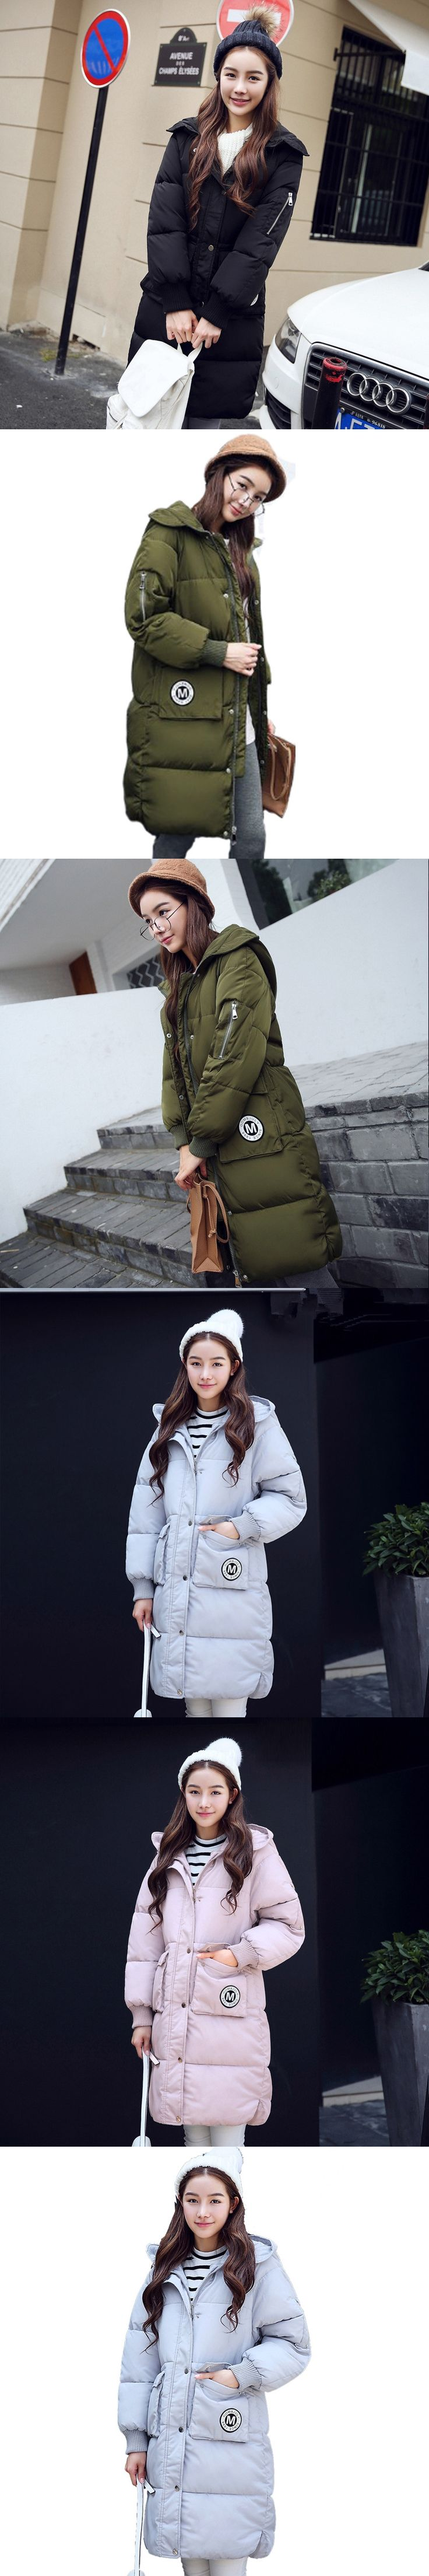 Military Jackets Thick Winter Jacket Women Long Coat Parka Hooded Chaquetas Mujer Wadded Cotton Winter Coat Parkas Outwear C3452